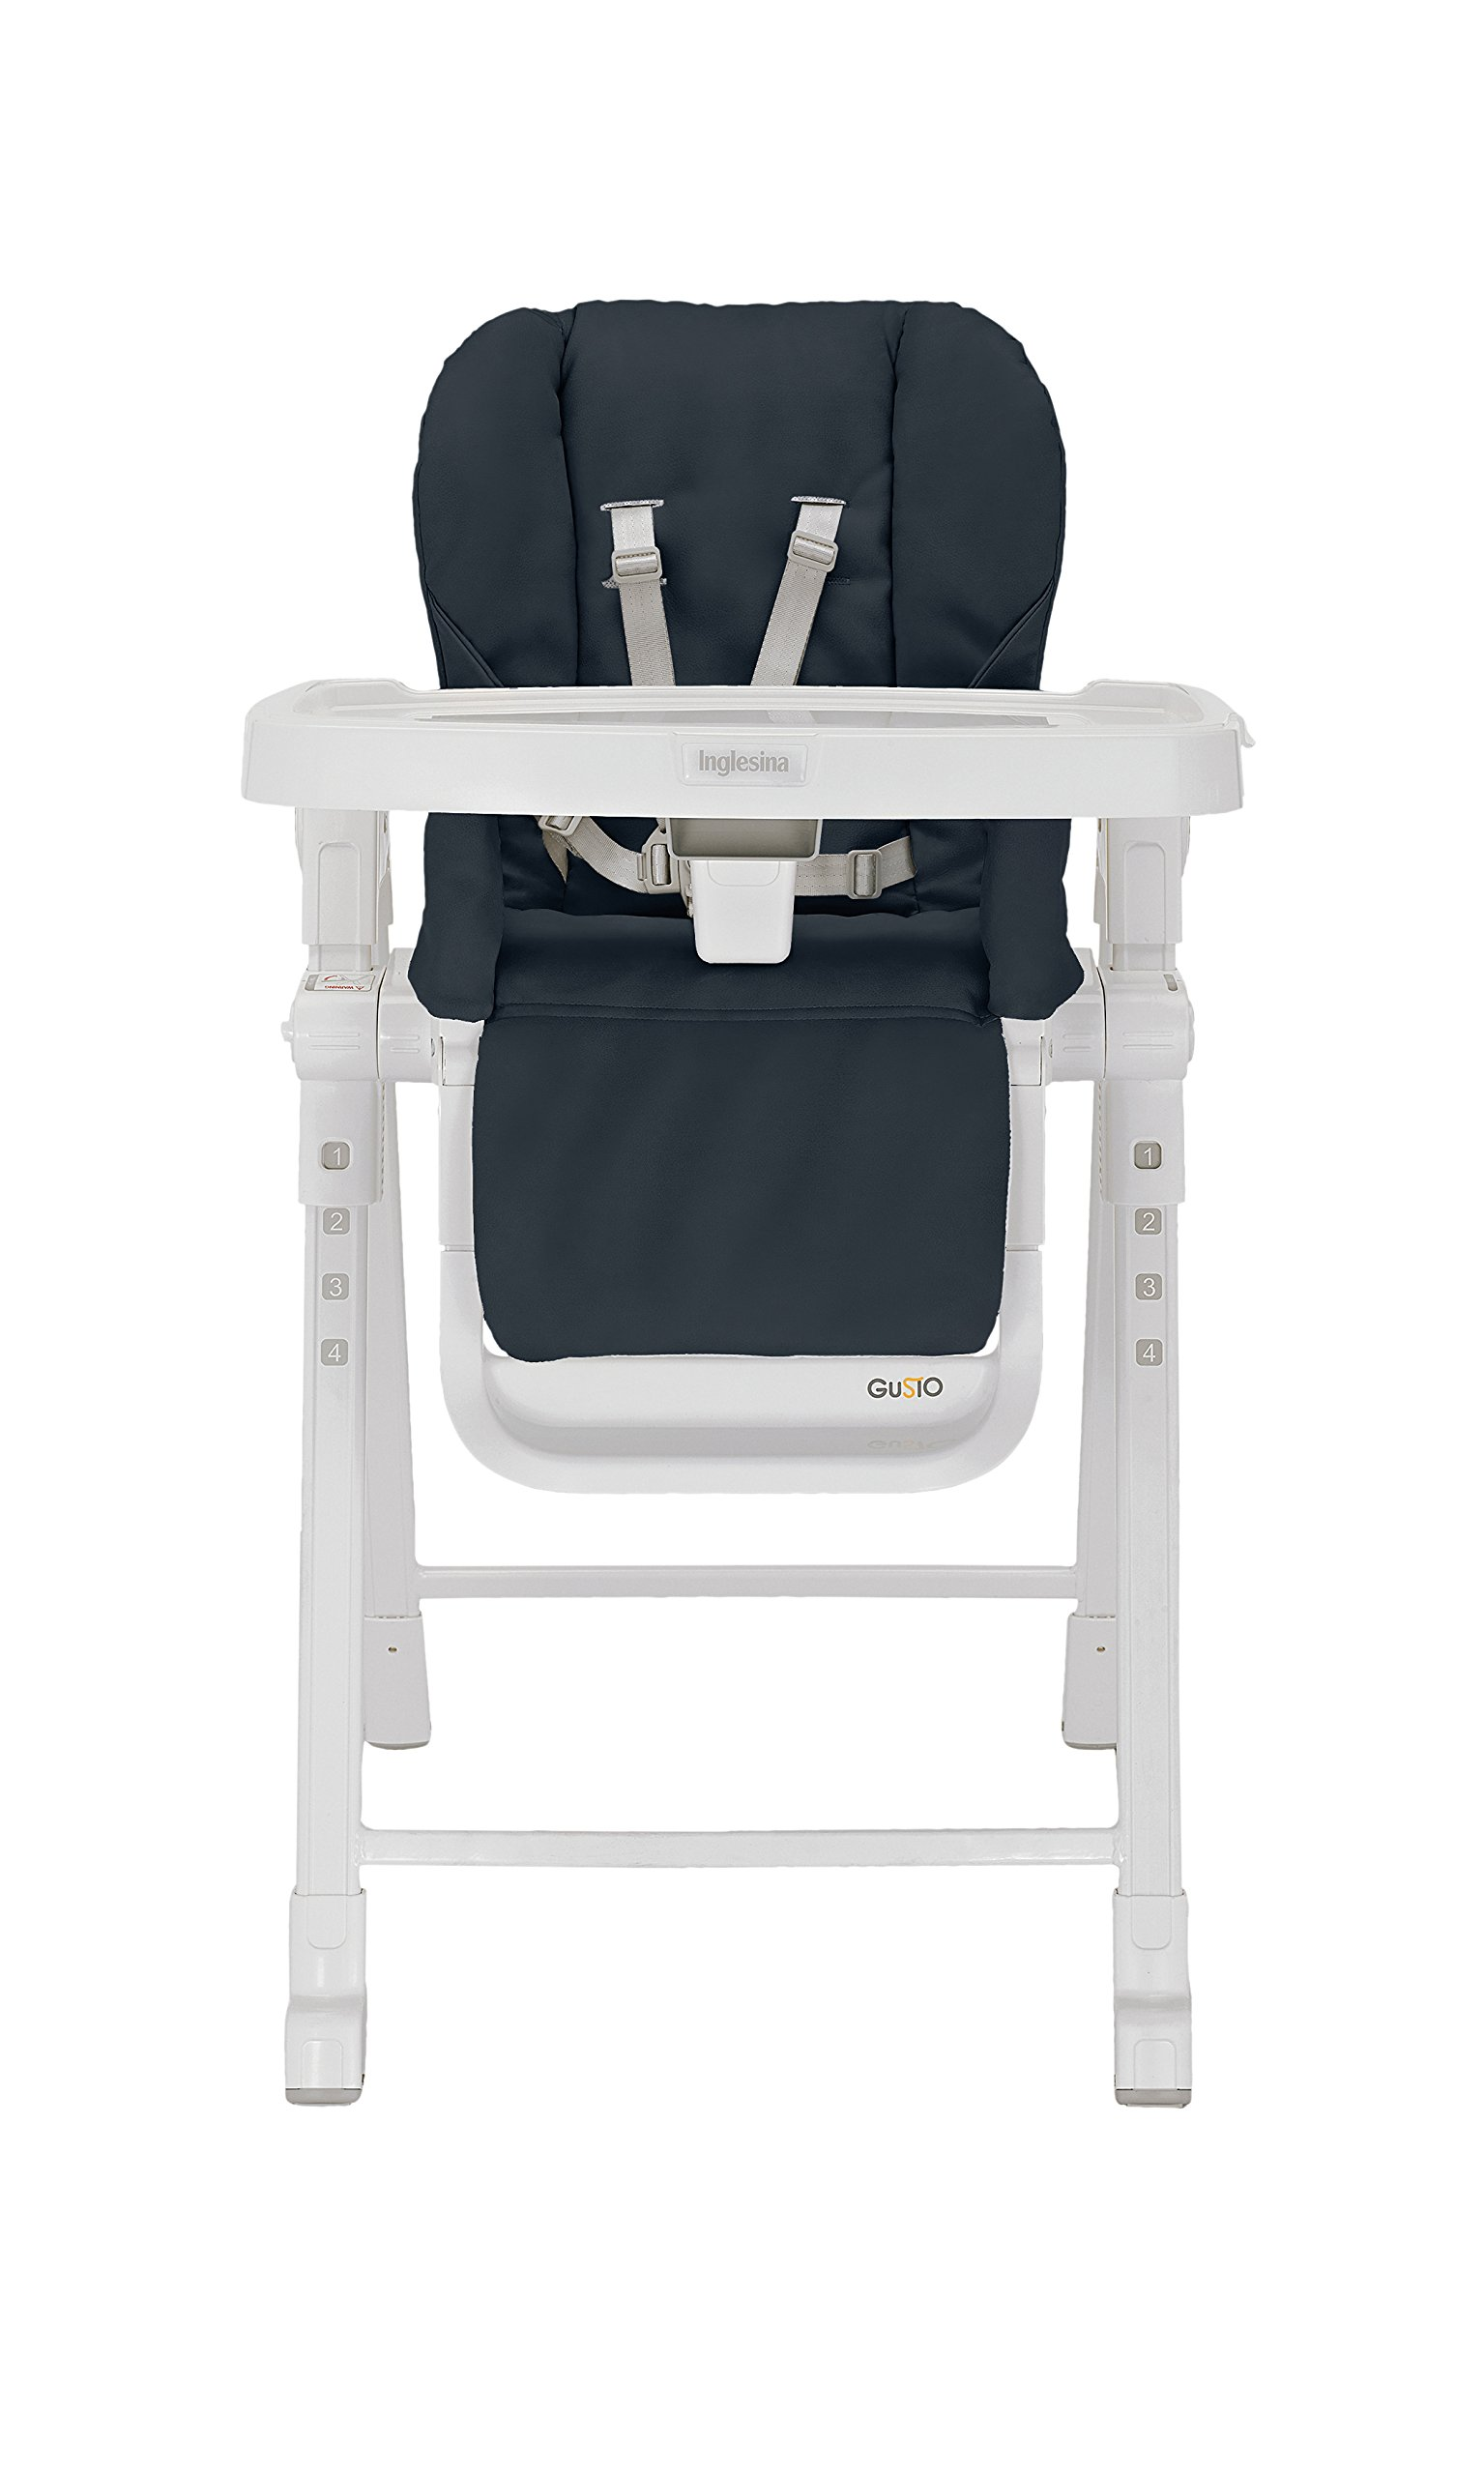 Inglesina Gusto HighChair - Fast and Easy Adjustable Baby High Chair for the Modern Family - Removable Tray Included {Graphite} by Inglesina